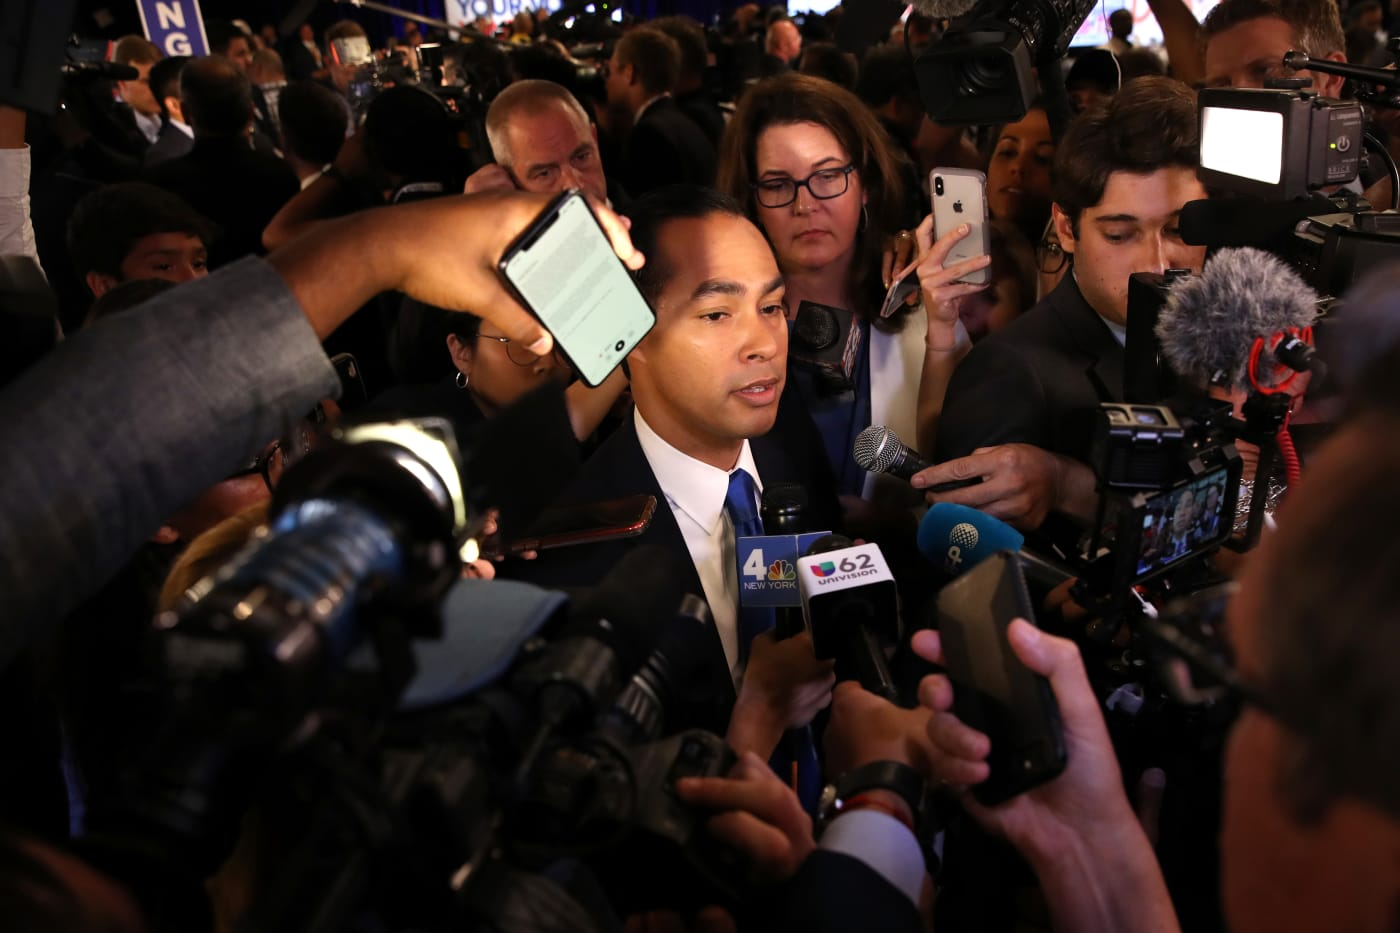 Julián Castro: The Fight Doesn't End at the Polls